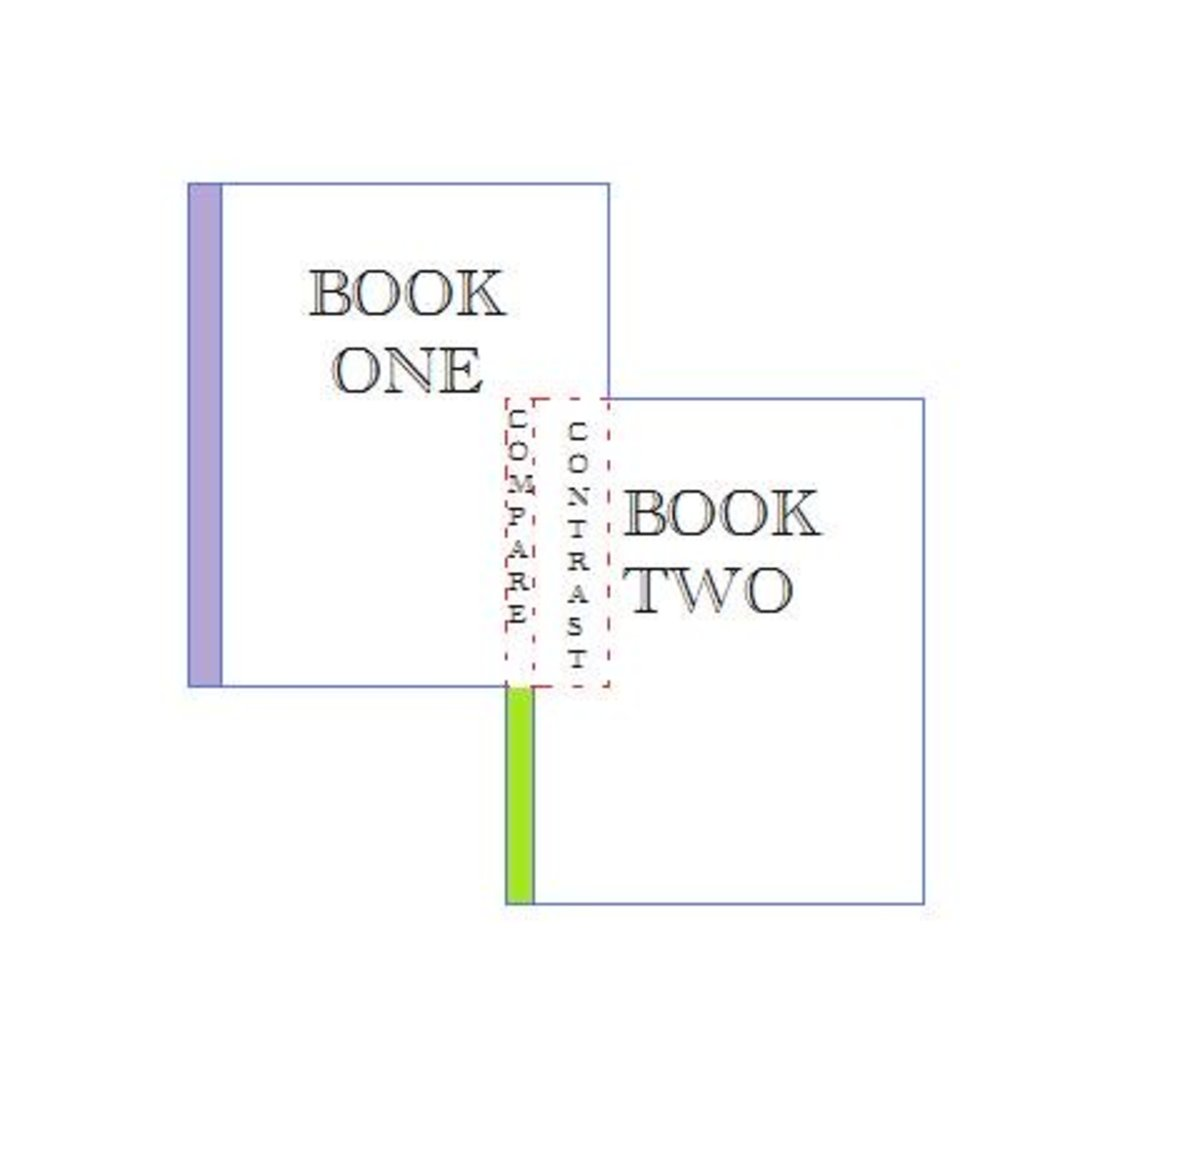 How to Analyze Two Books in an Essay